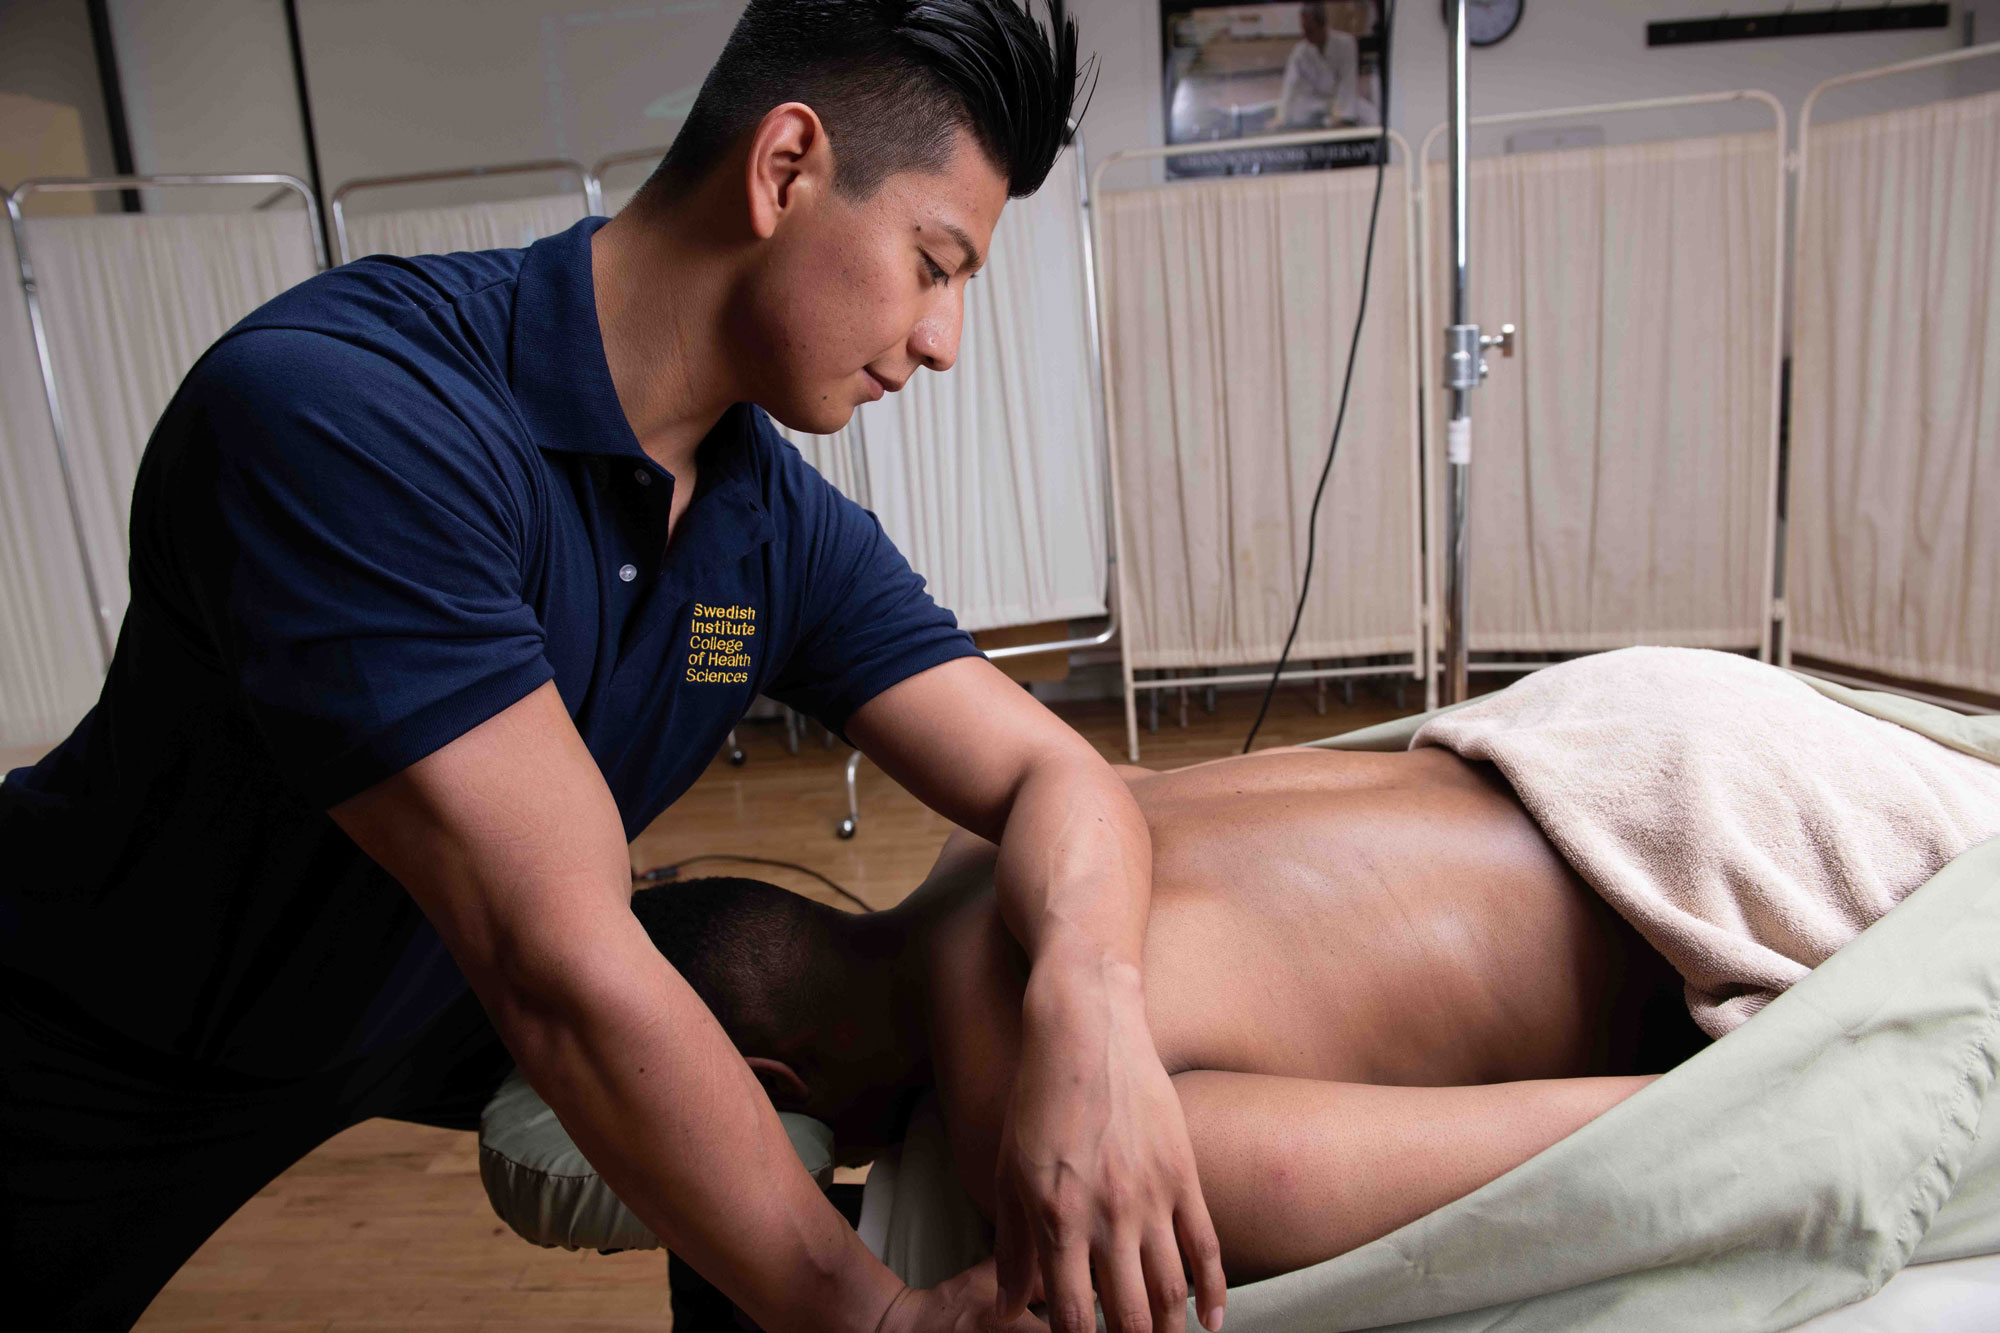 Massage Therapy School Student - Swedish Institute - New York, NY